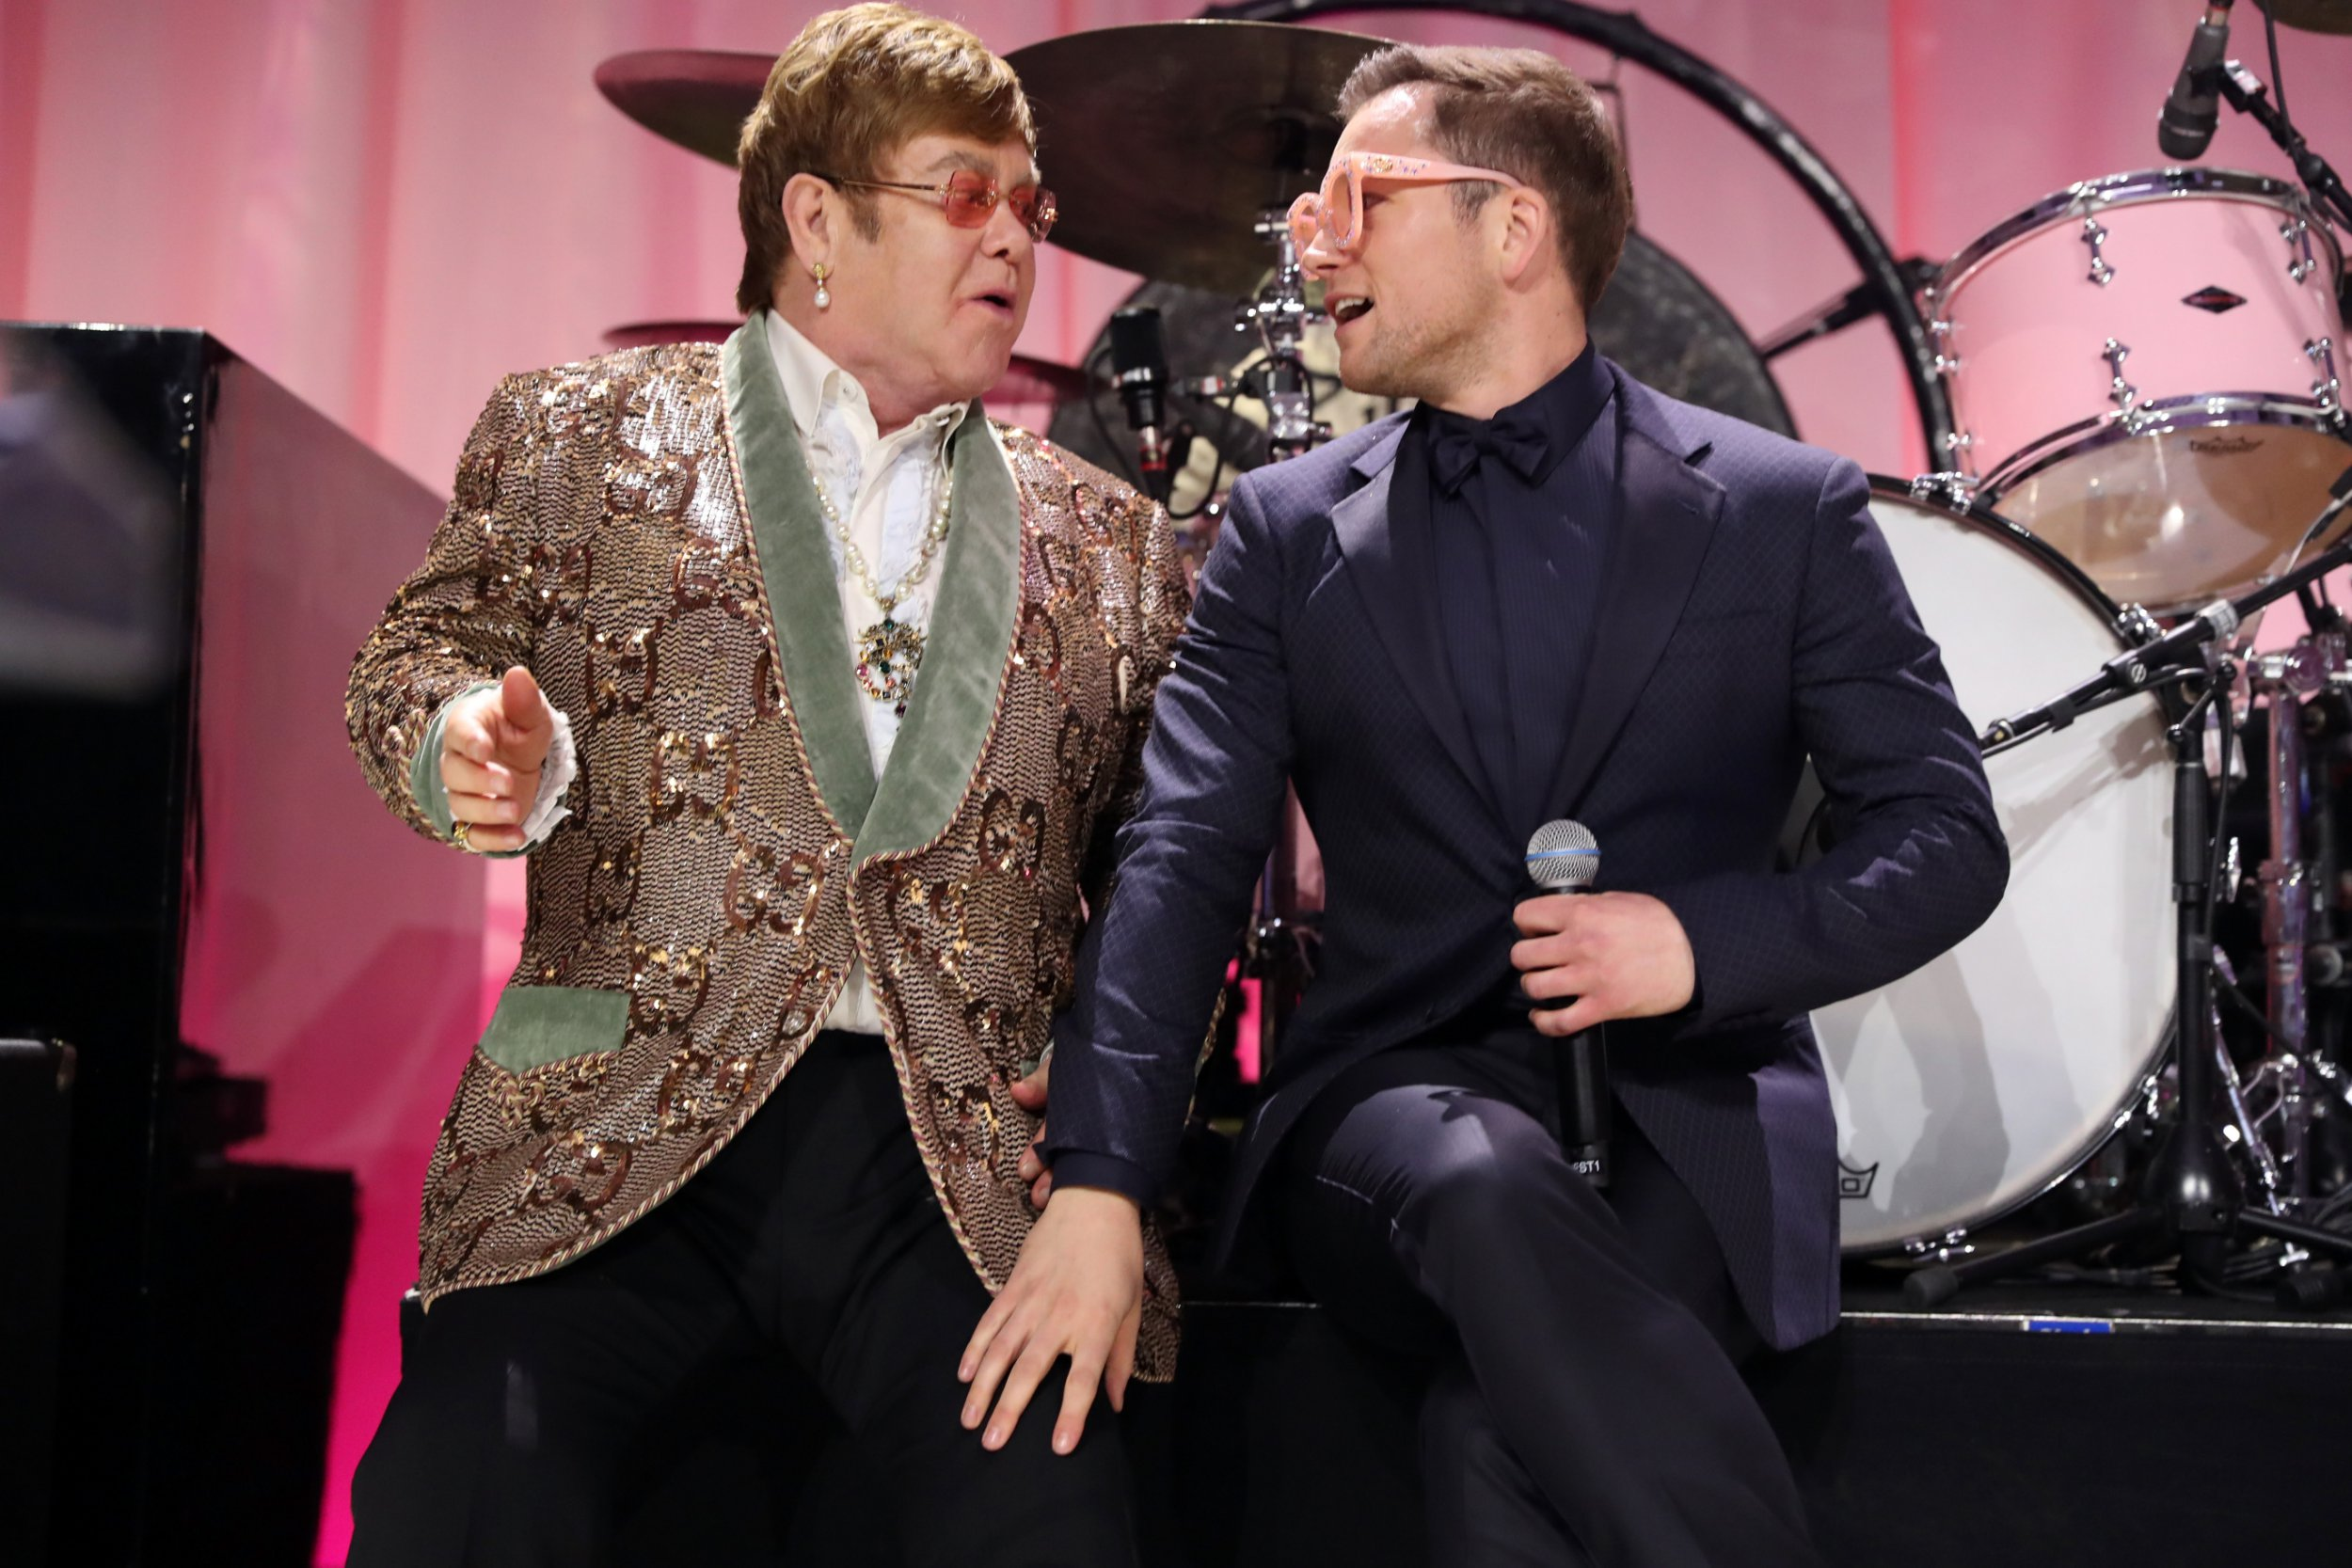 Elton John joined Rocketman's Taron Egerton for performance of Tiny Dancer at the Oscars